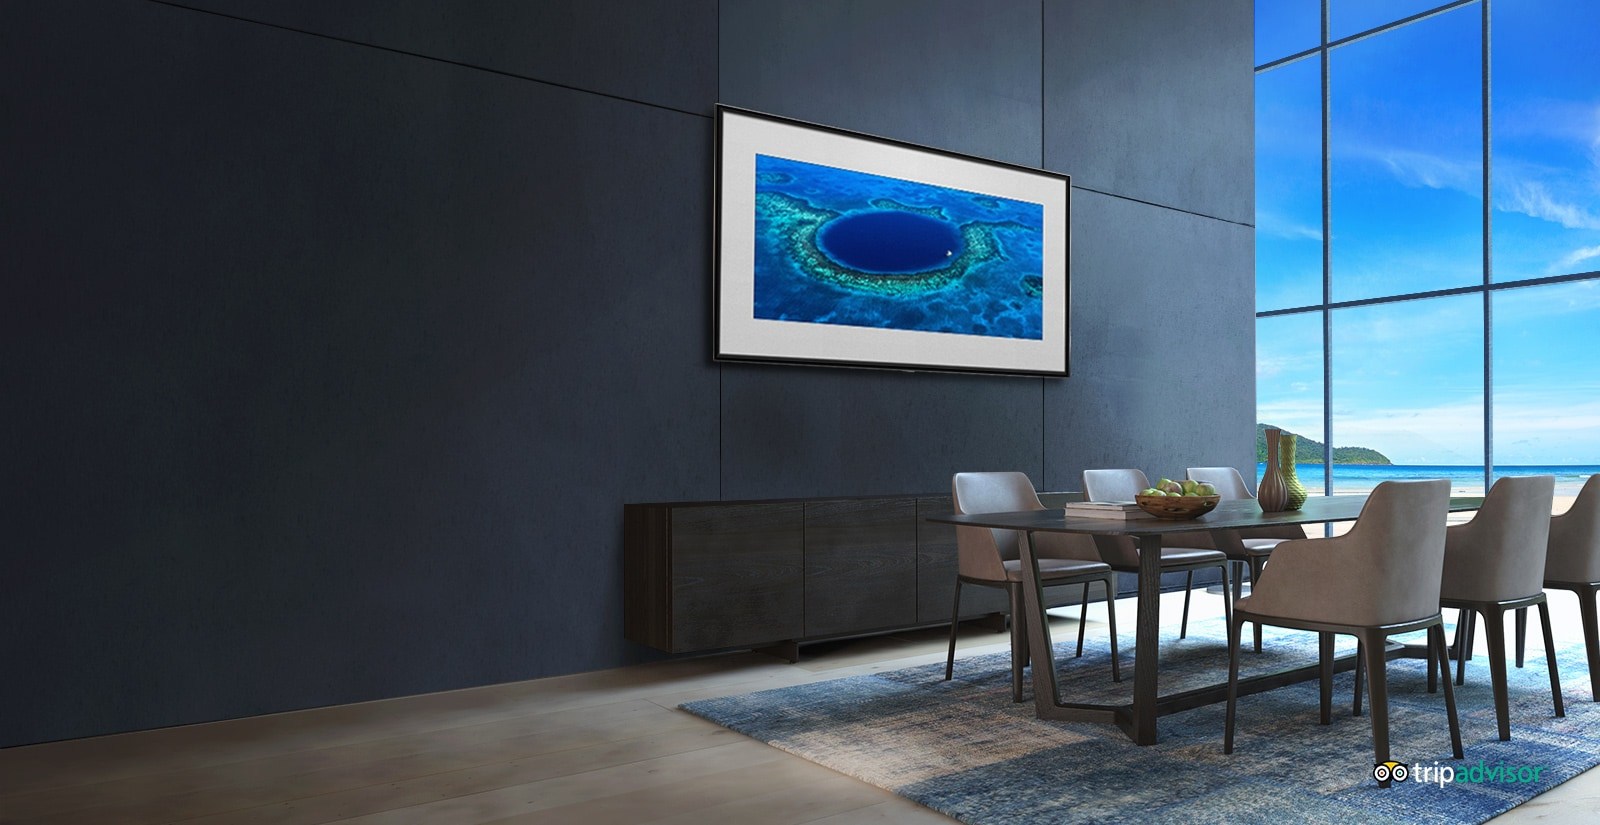 LG TV's - Gallery Mode for immersing in the vacation mood